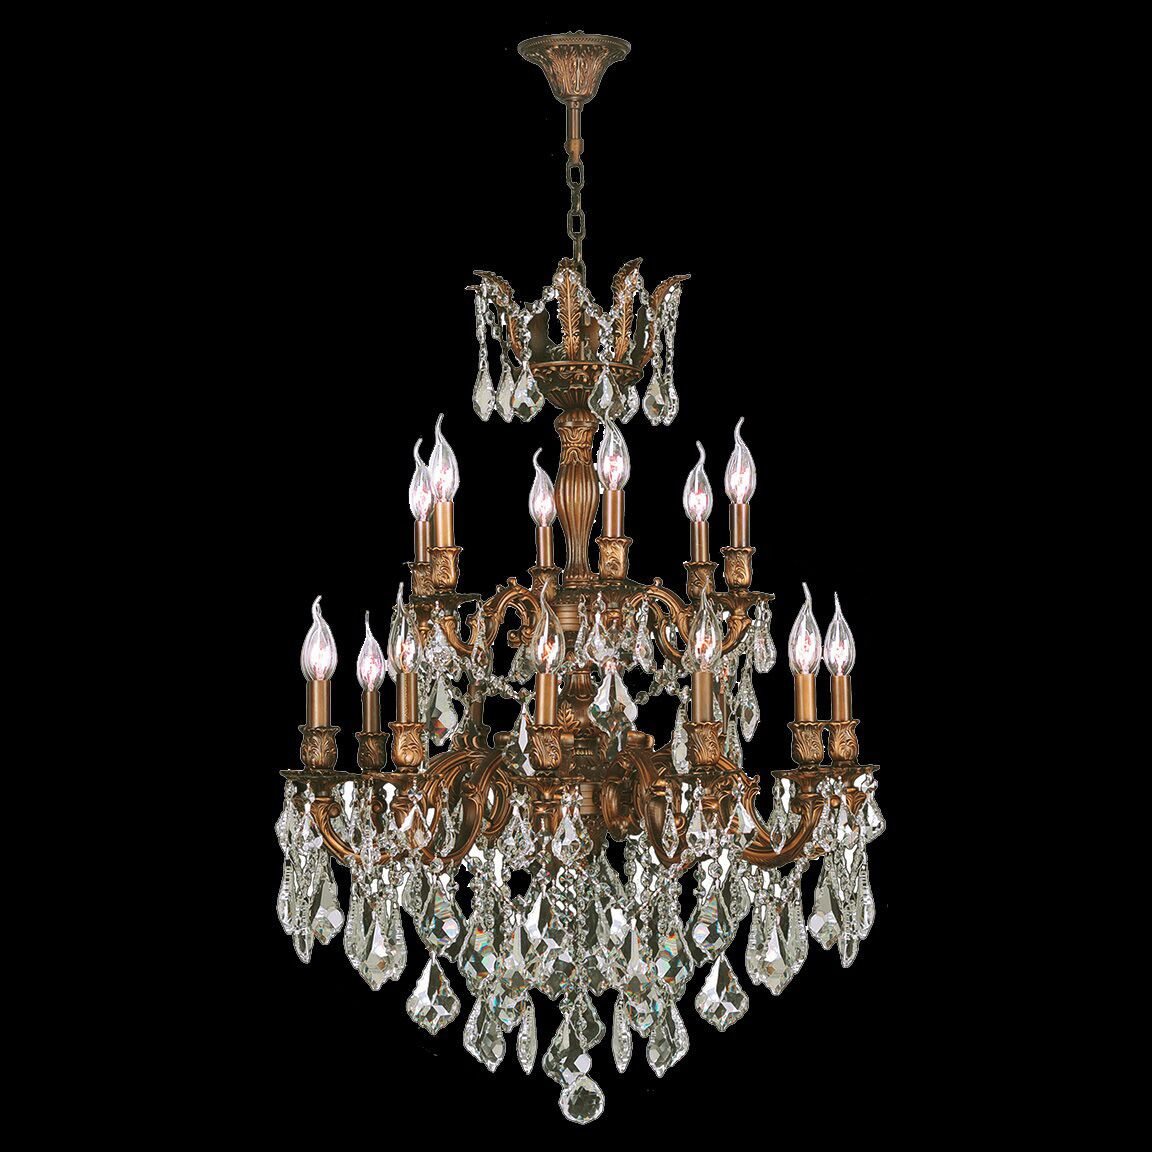 Dodson Traditional 18-Light Chain Candle Style Chandelier Crystal Color: Golden Teak